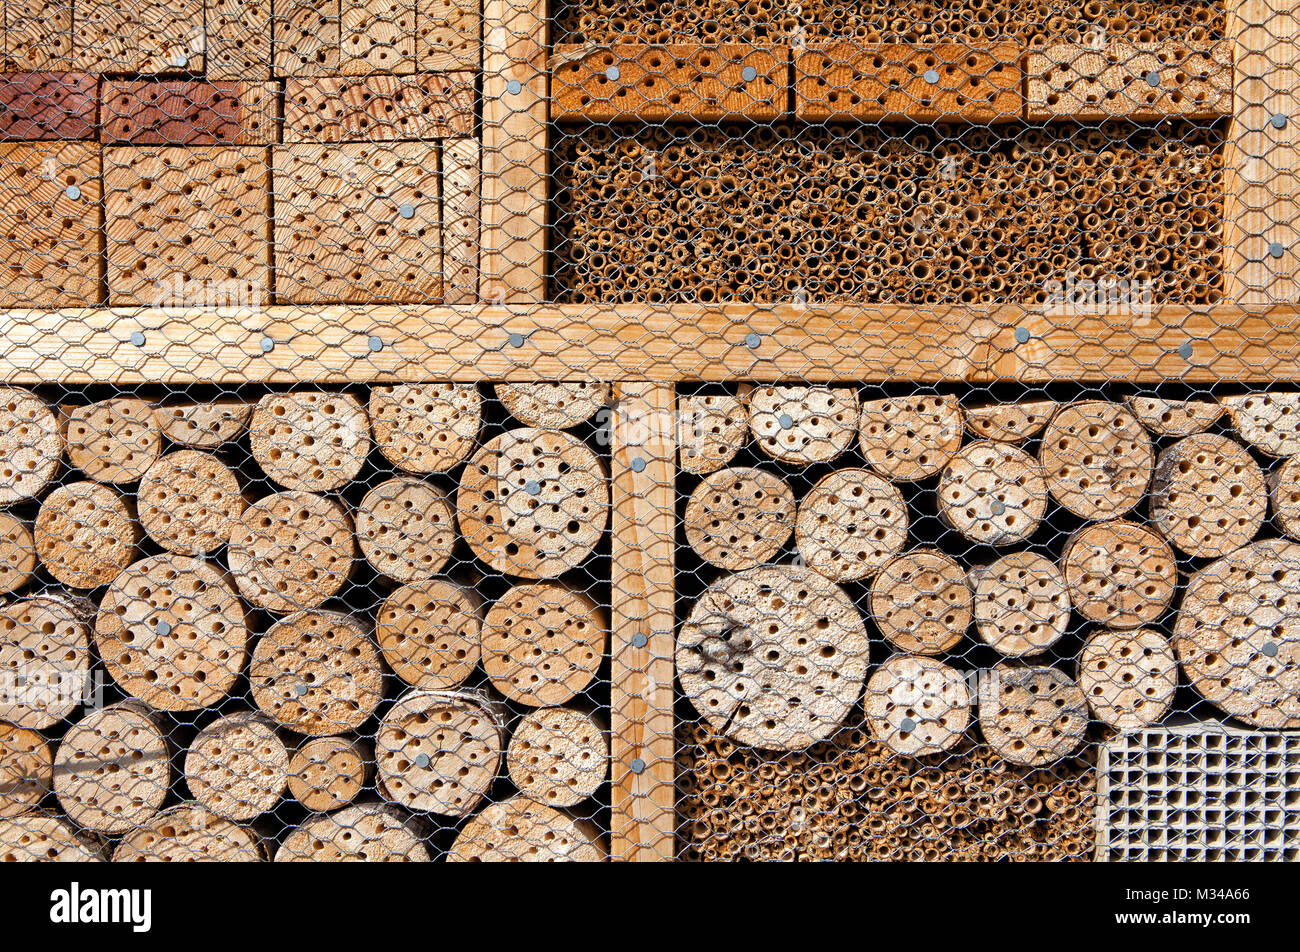 Insect asylum, insect box, an artificial help for nesting and overwintering insects - Stock Image